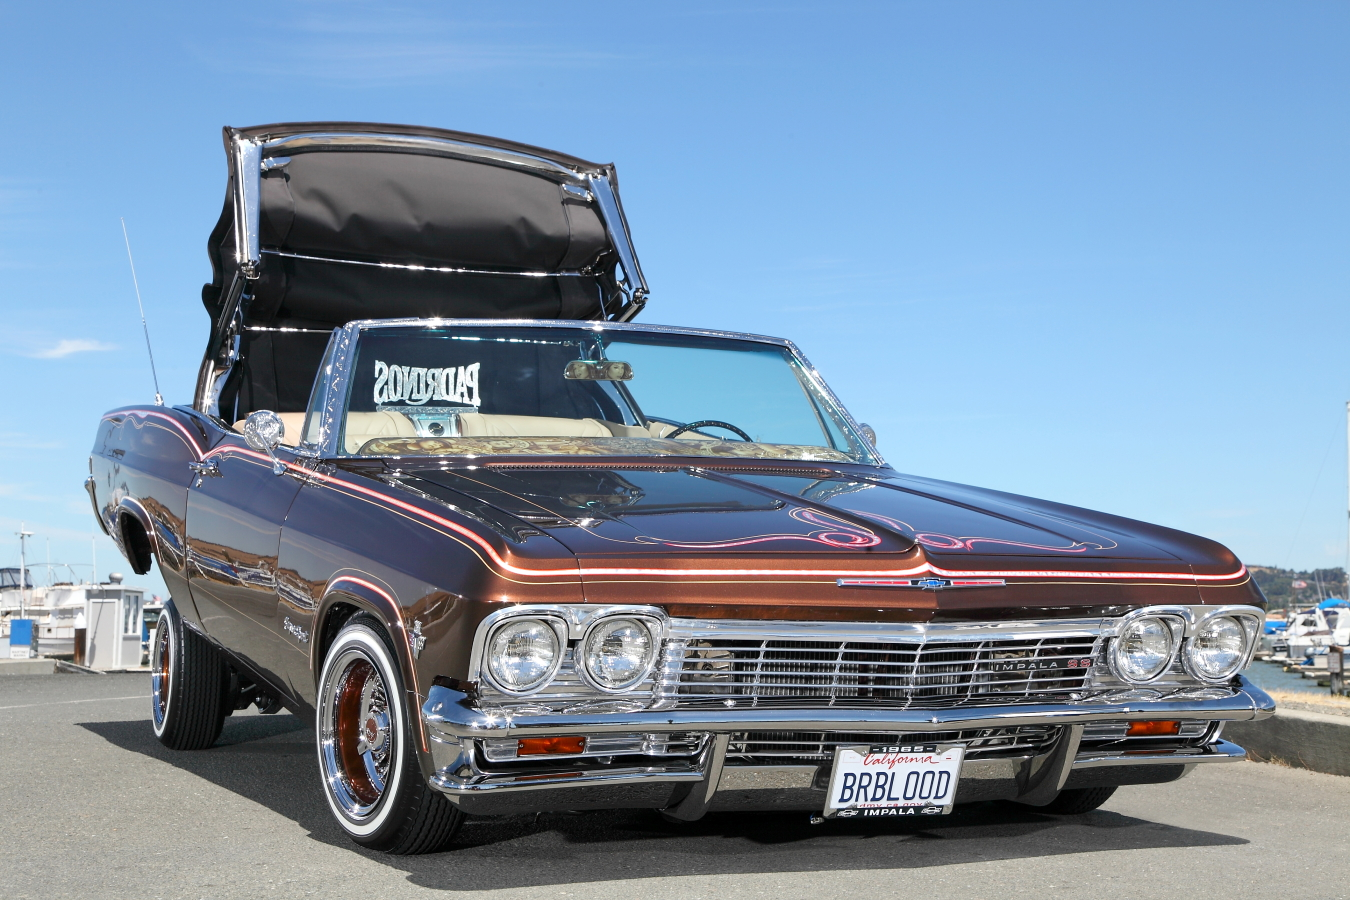 Lowrider Rims And Tires >> 1965 Chevrolet Impala SS Convertible Lowrider - Rides Magazine